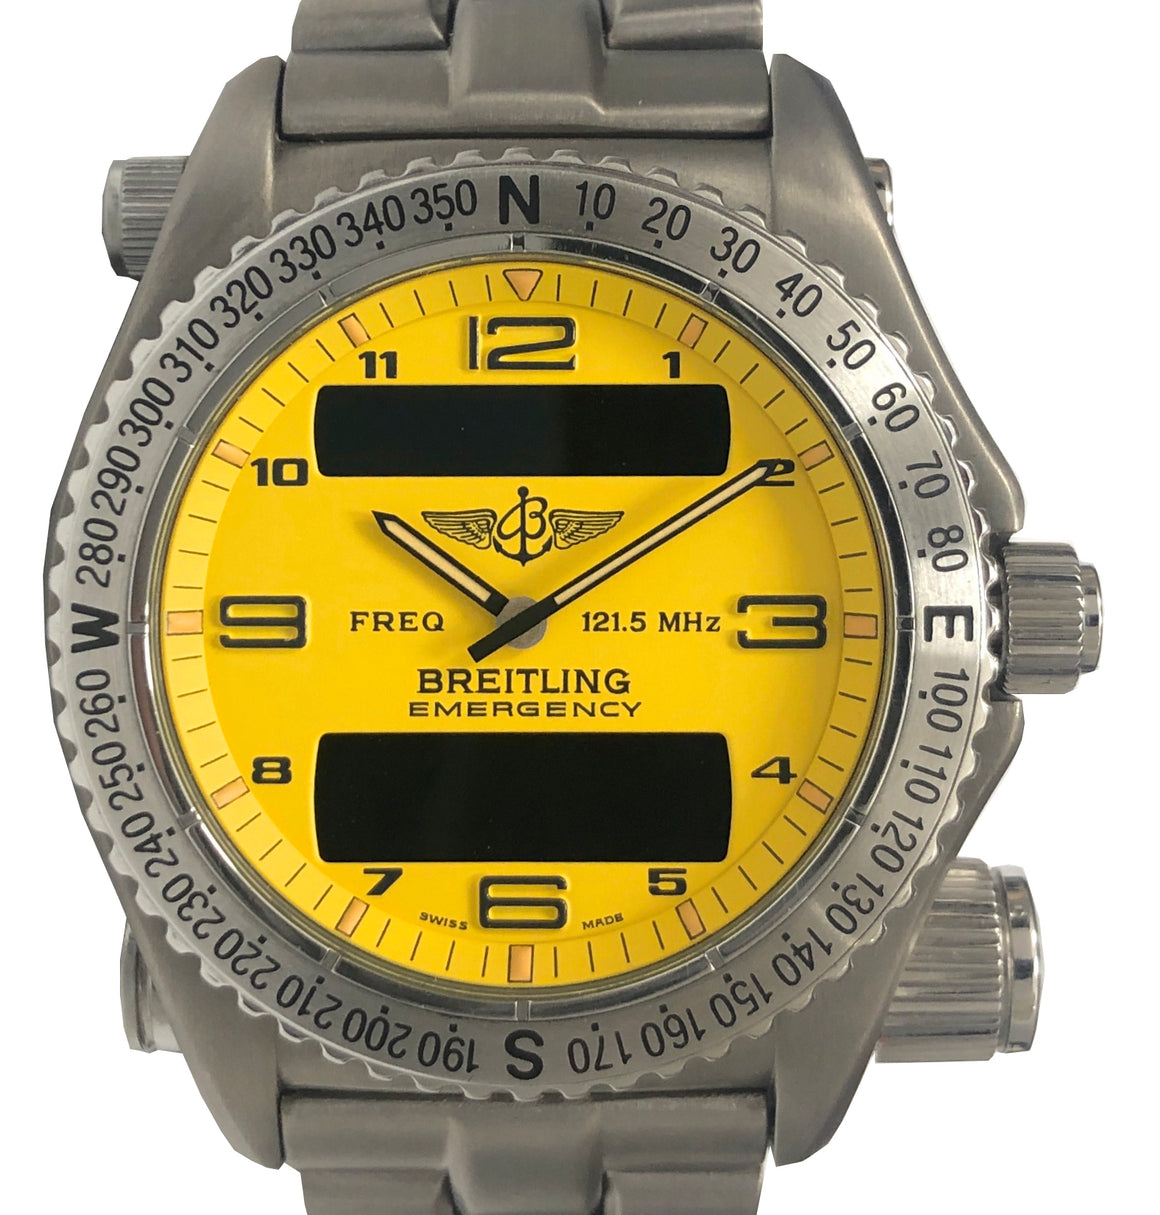 Breitling Titanium Emergency, Yellow Dial